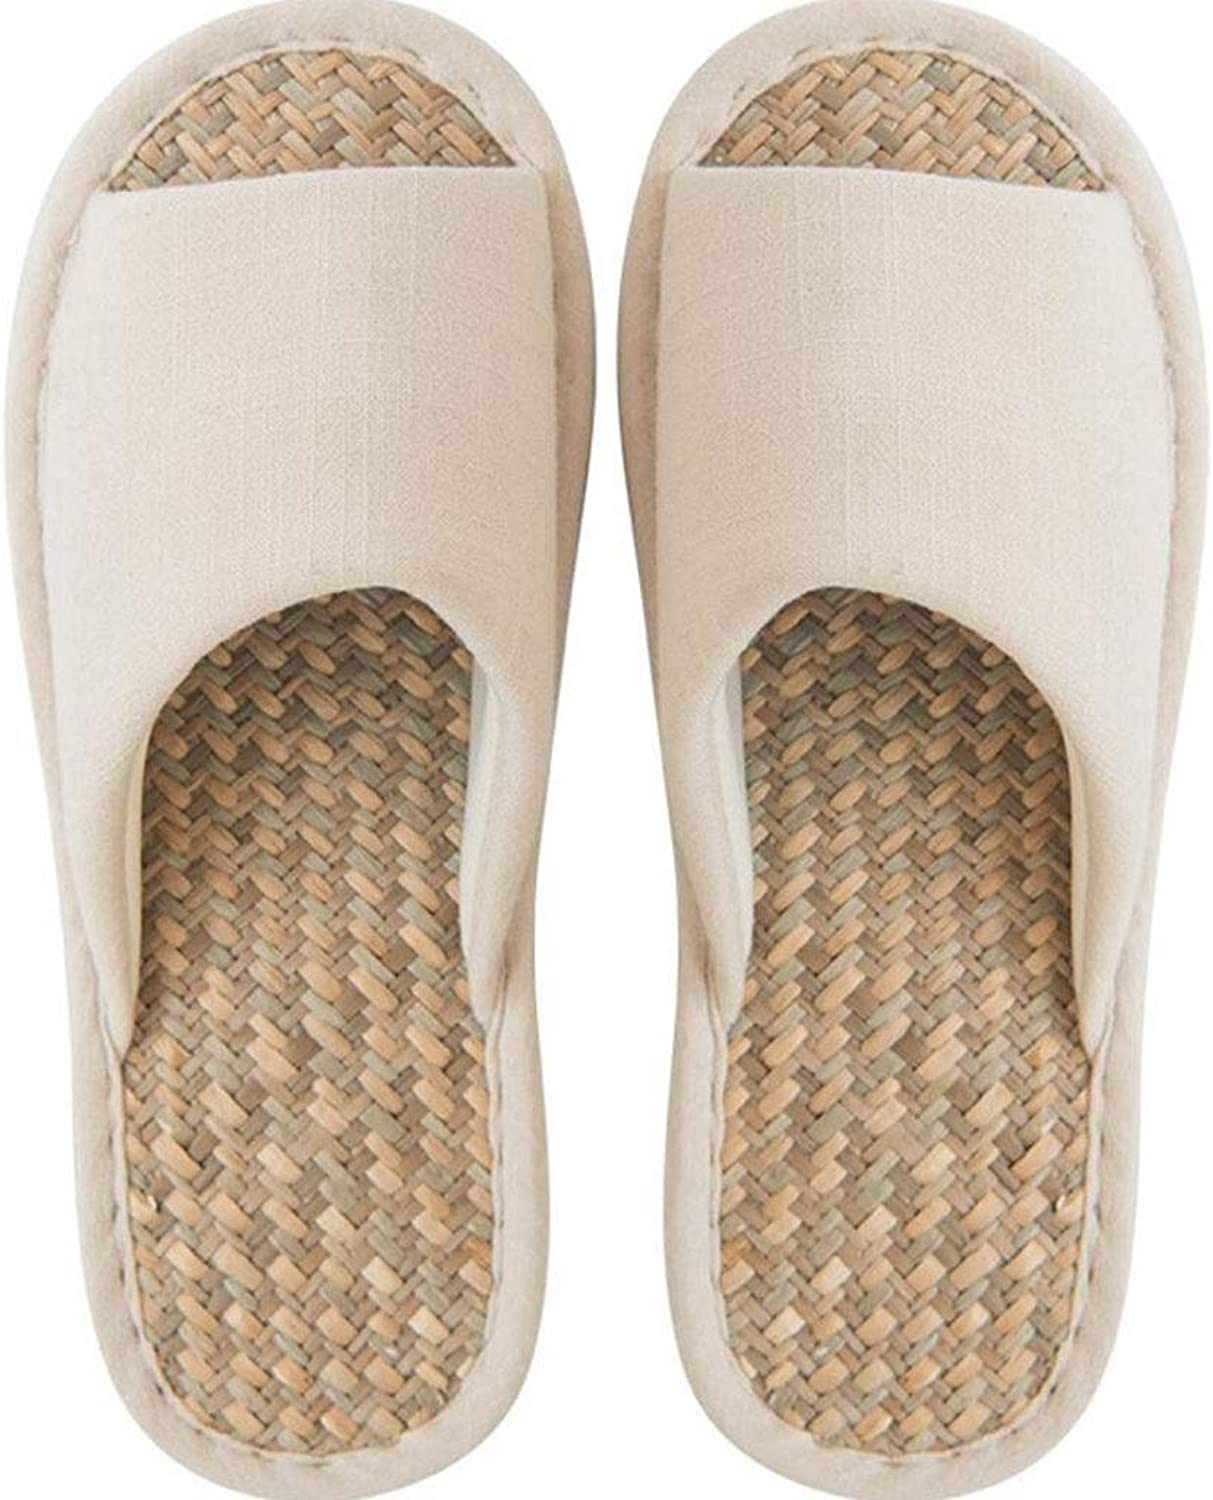 Summer Sandals and Slippers Non-Slip Mats Weave Cool and Breathable Home Indoor Couple Slippers (color   Beige, Size   39)